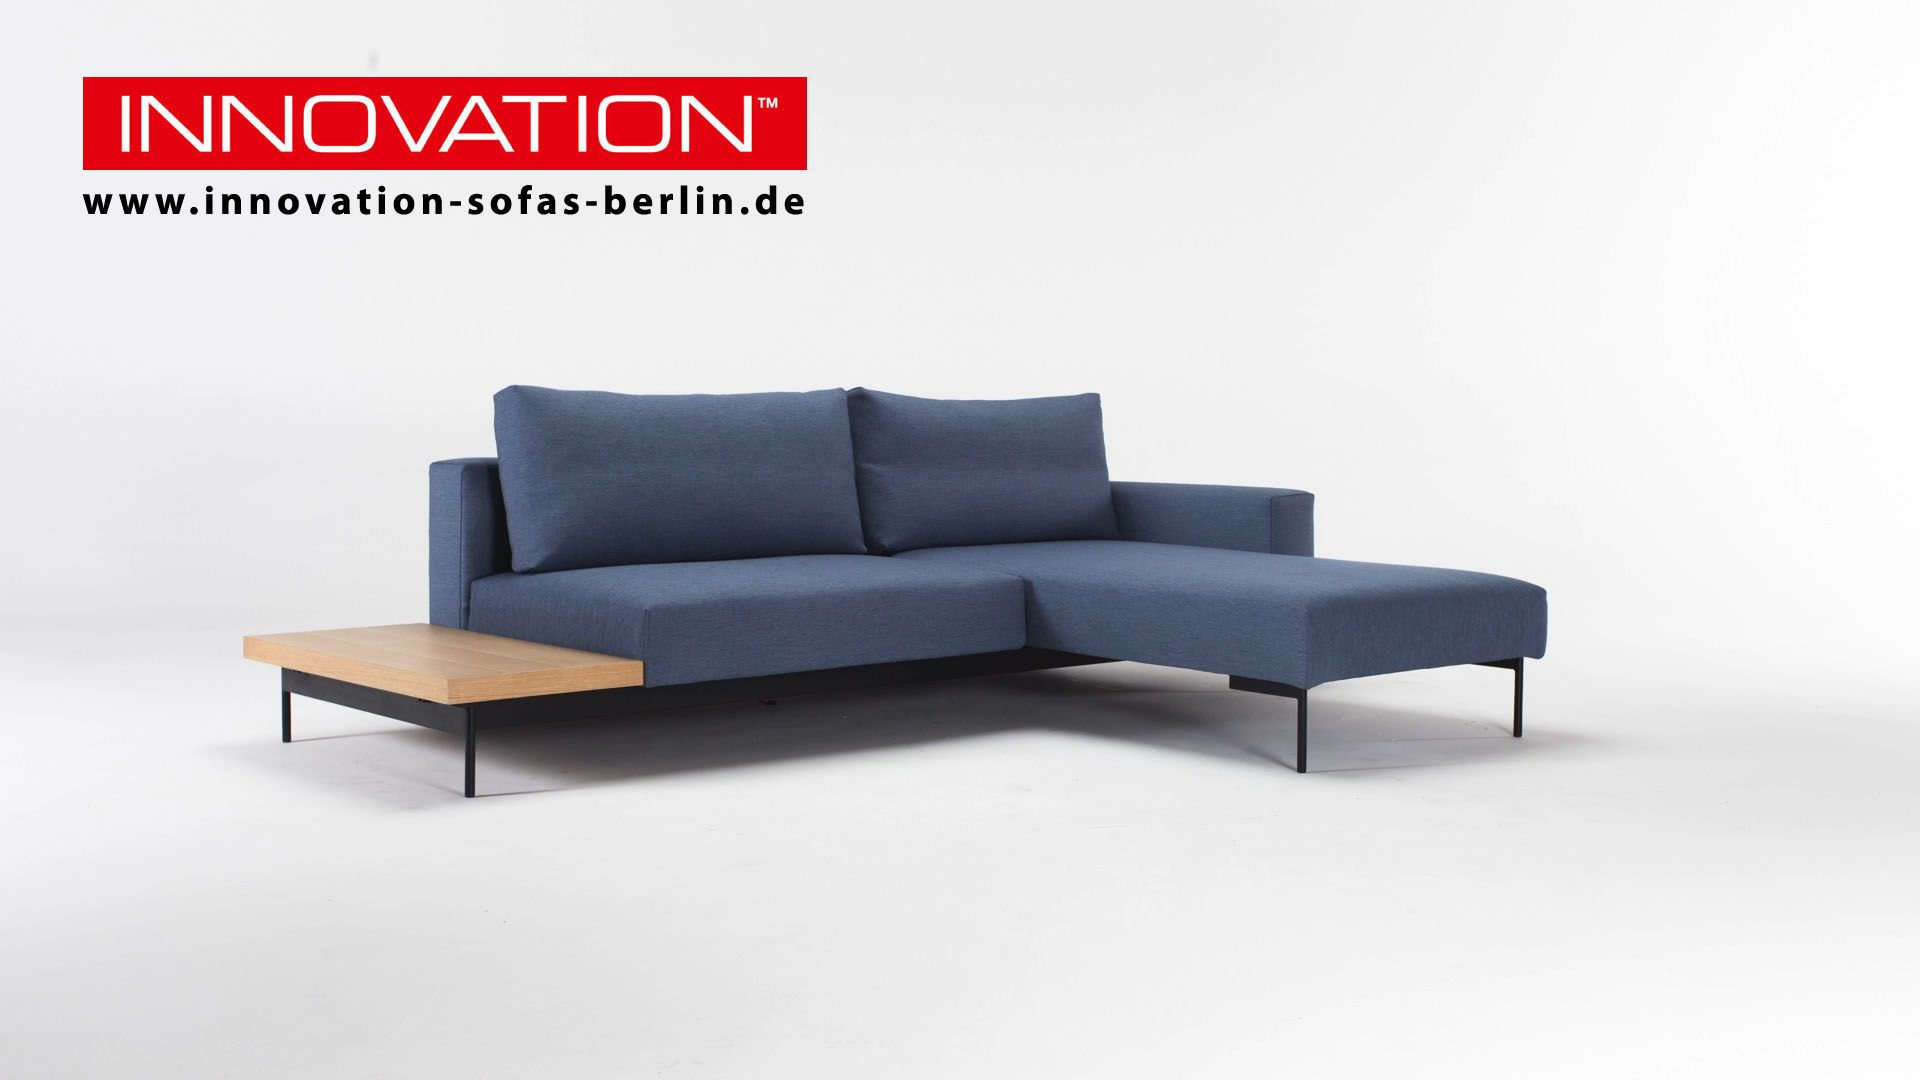 Innovation Schlafsofas Berlin Modulares Schlafsofa Bragi Von Innovation Bei Innovation Sofas